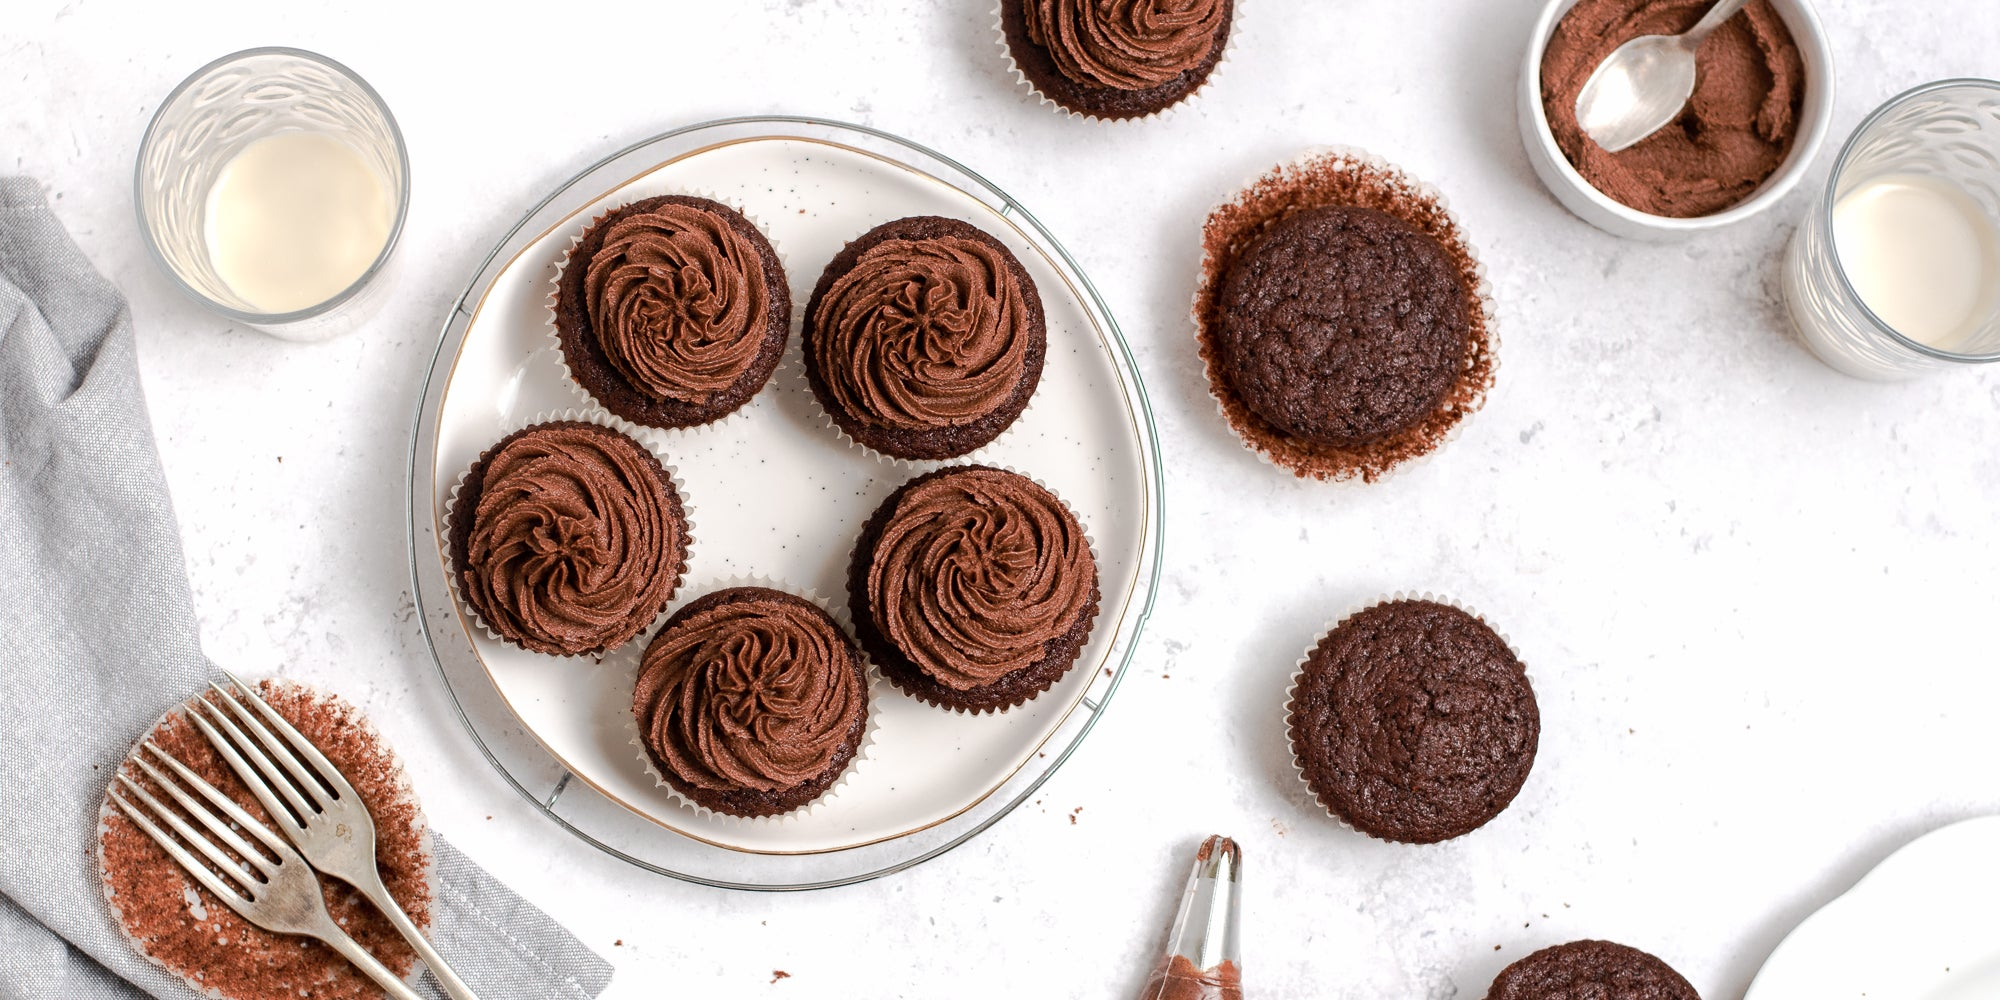 Top view of Vegan Chocolate Cupcakes piped with vegan chocolate buttercream.